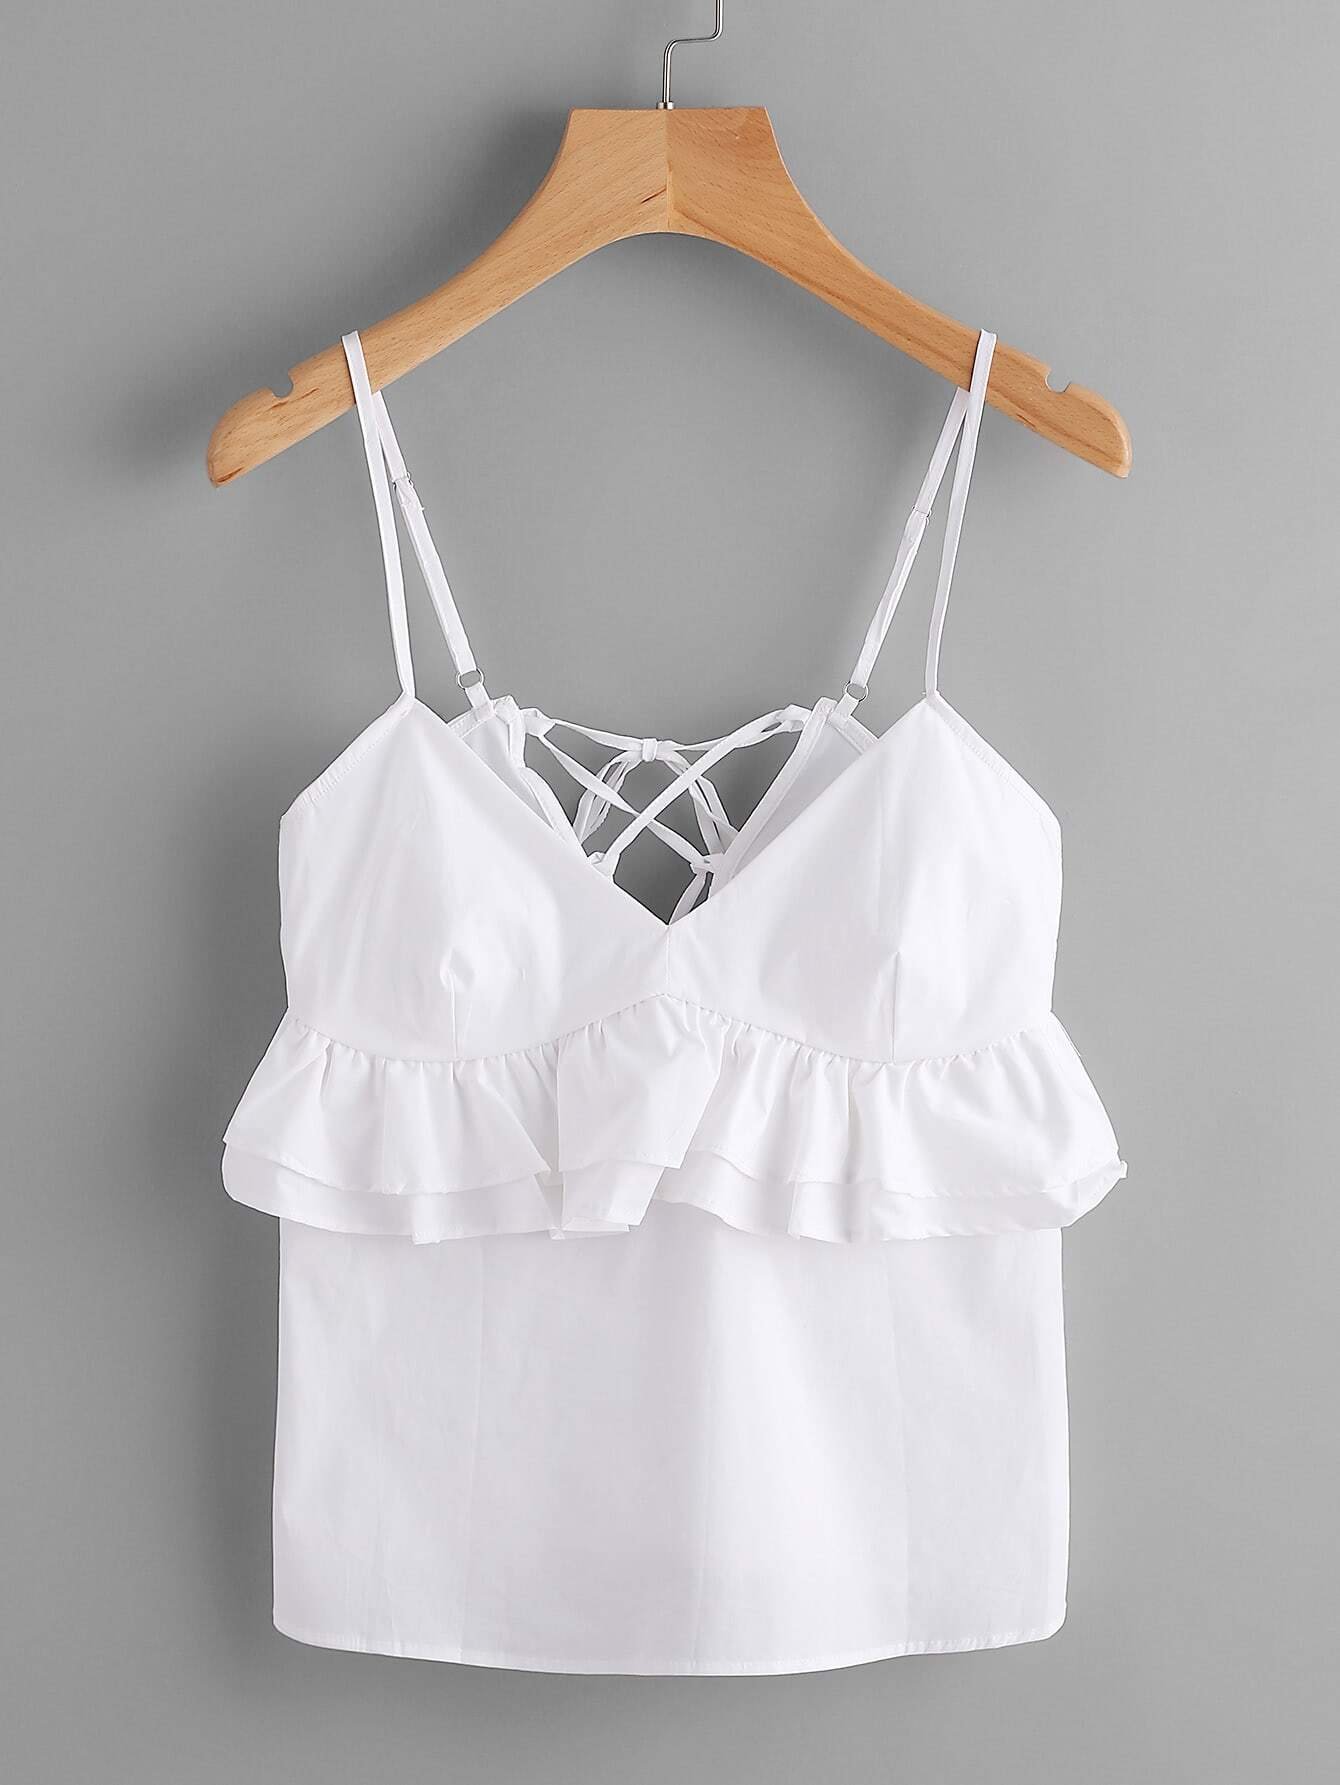 Tiered Frill Trim Lace Up Cami Top tiered frill trim lace up cami top